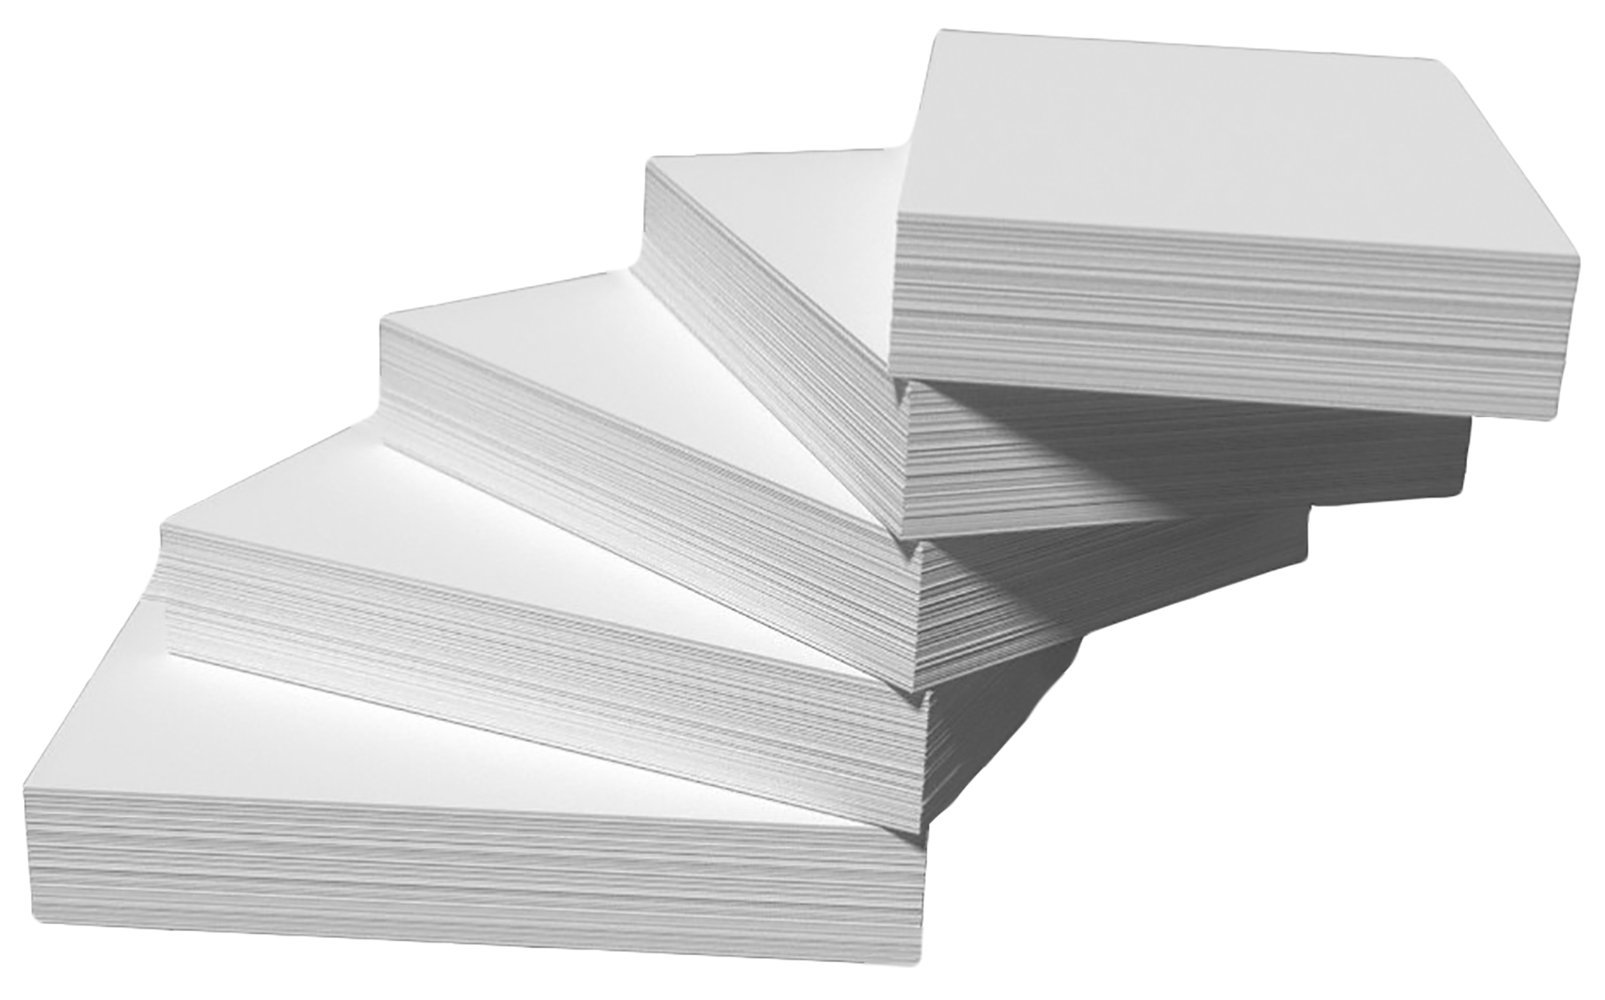 DEBRADALE DESIGNS - Blank Unruled Index Cards - 4 x 6 Inches - White - 500 Cards - 5 Packages of 100 - Standard 110# Index Card Stock - 199 GSM - .009 Thick